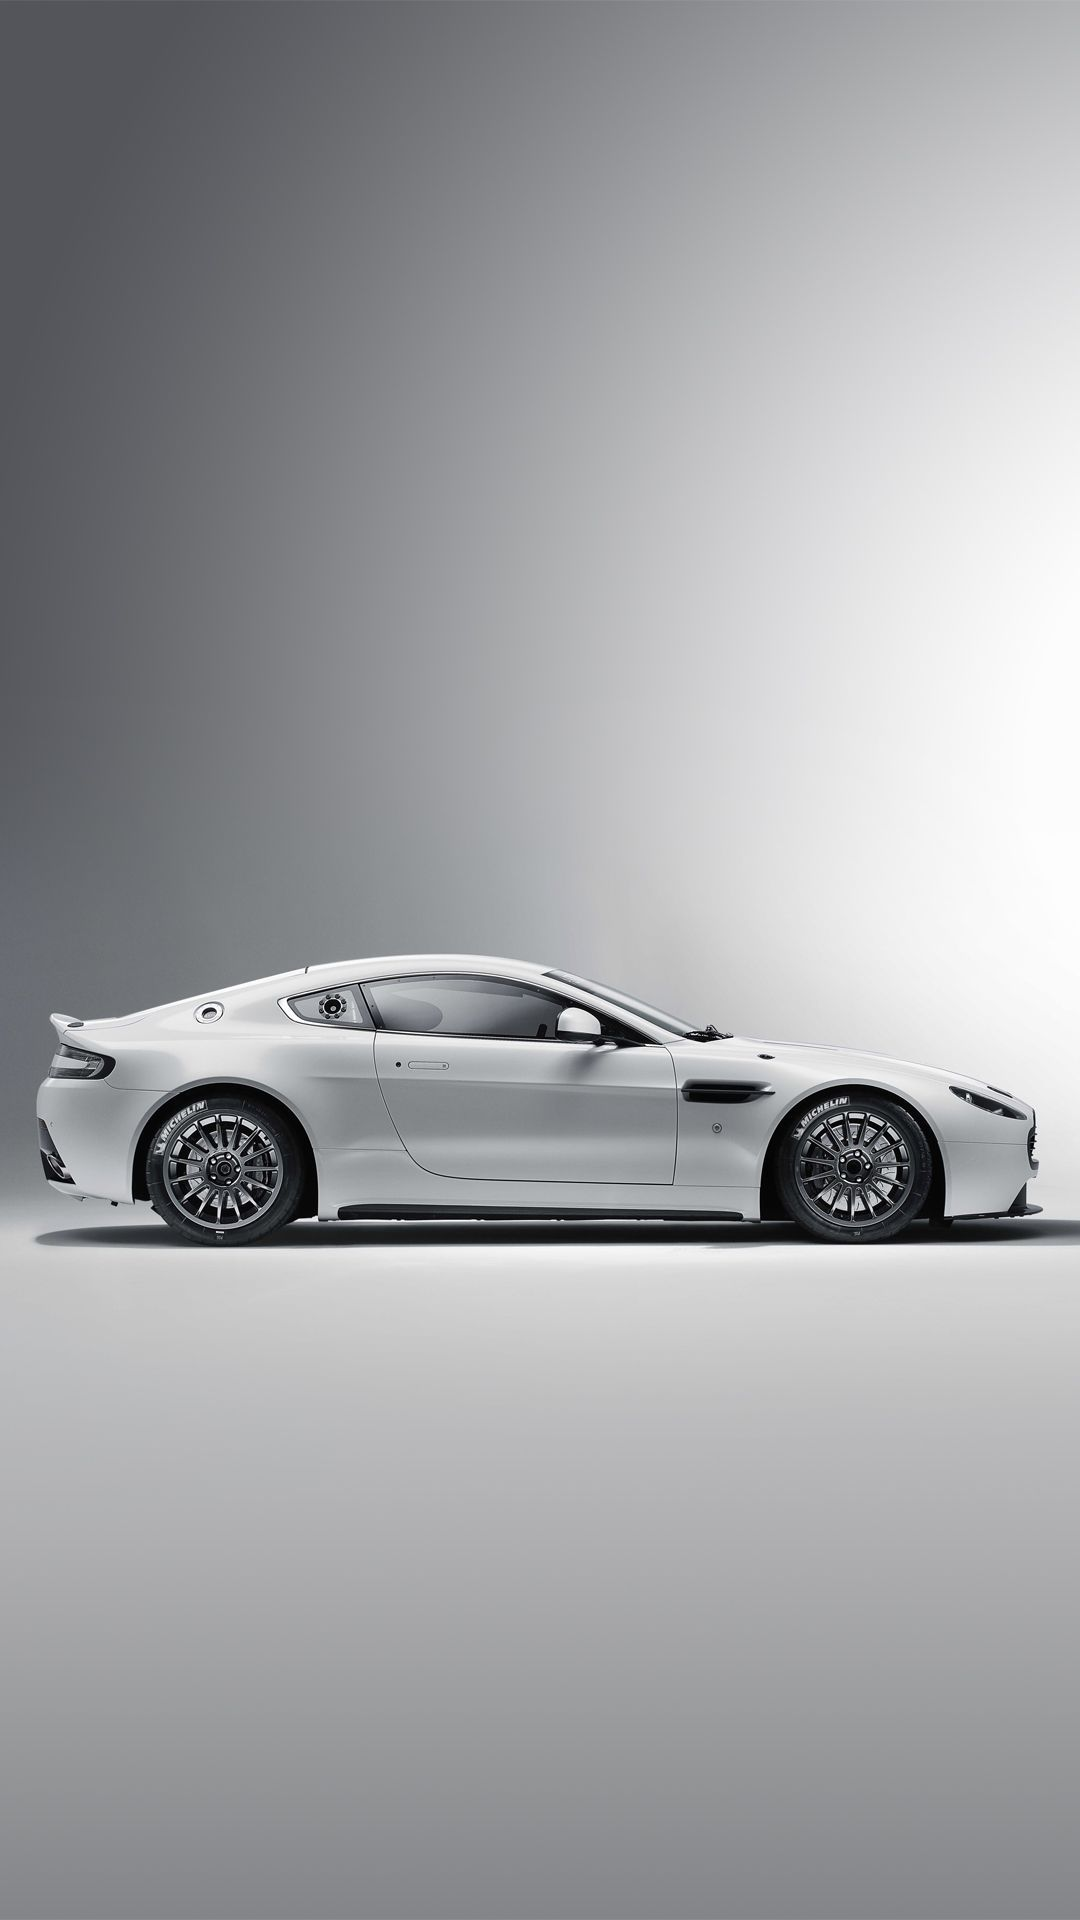 The Most Luxury Cars In The World With Best Photos Of Cars Android Wallpaper Dream Cars List Of Luxury Cars